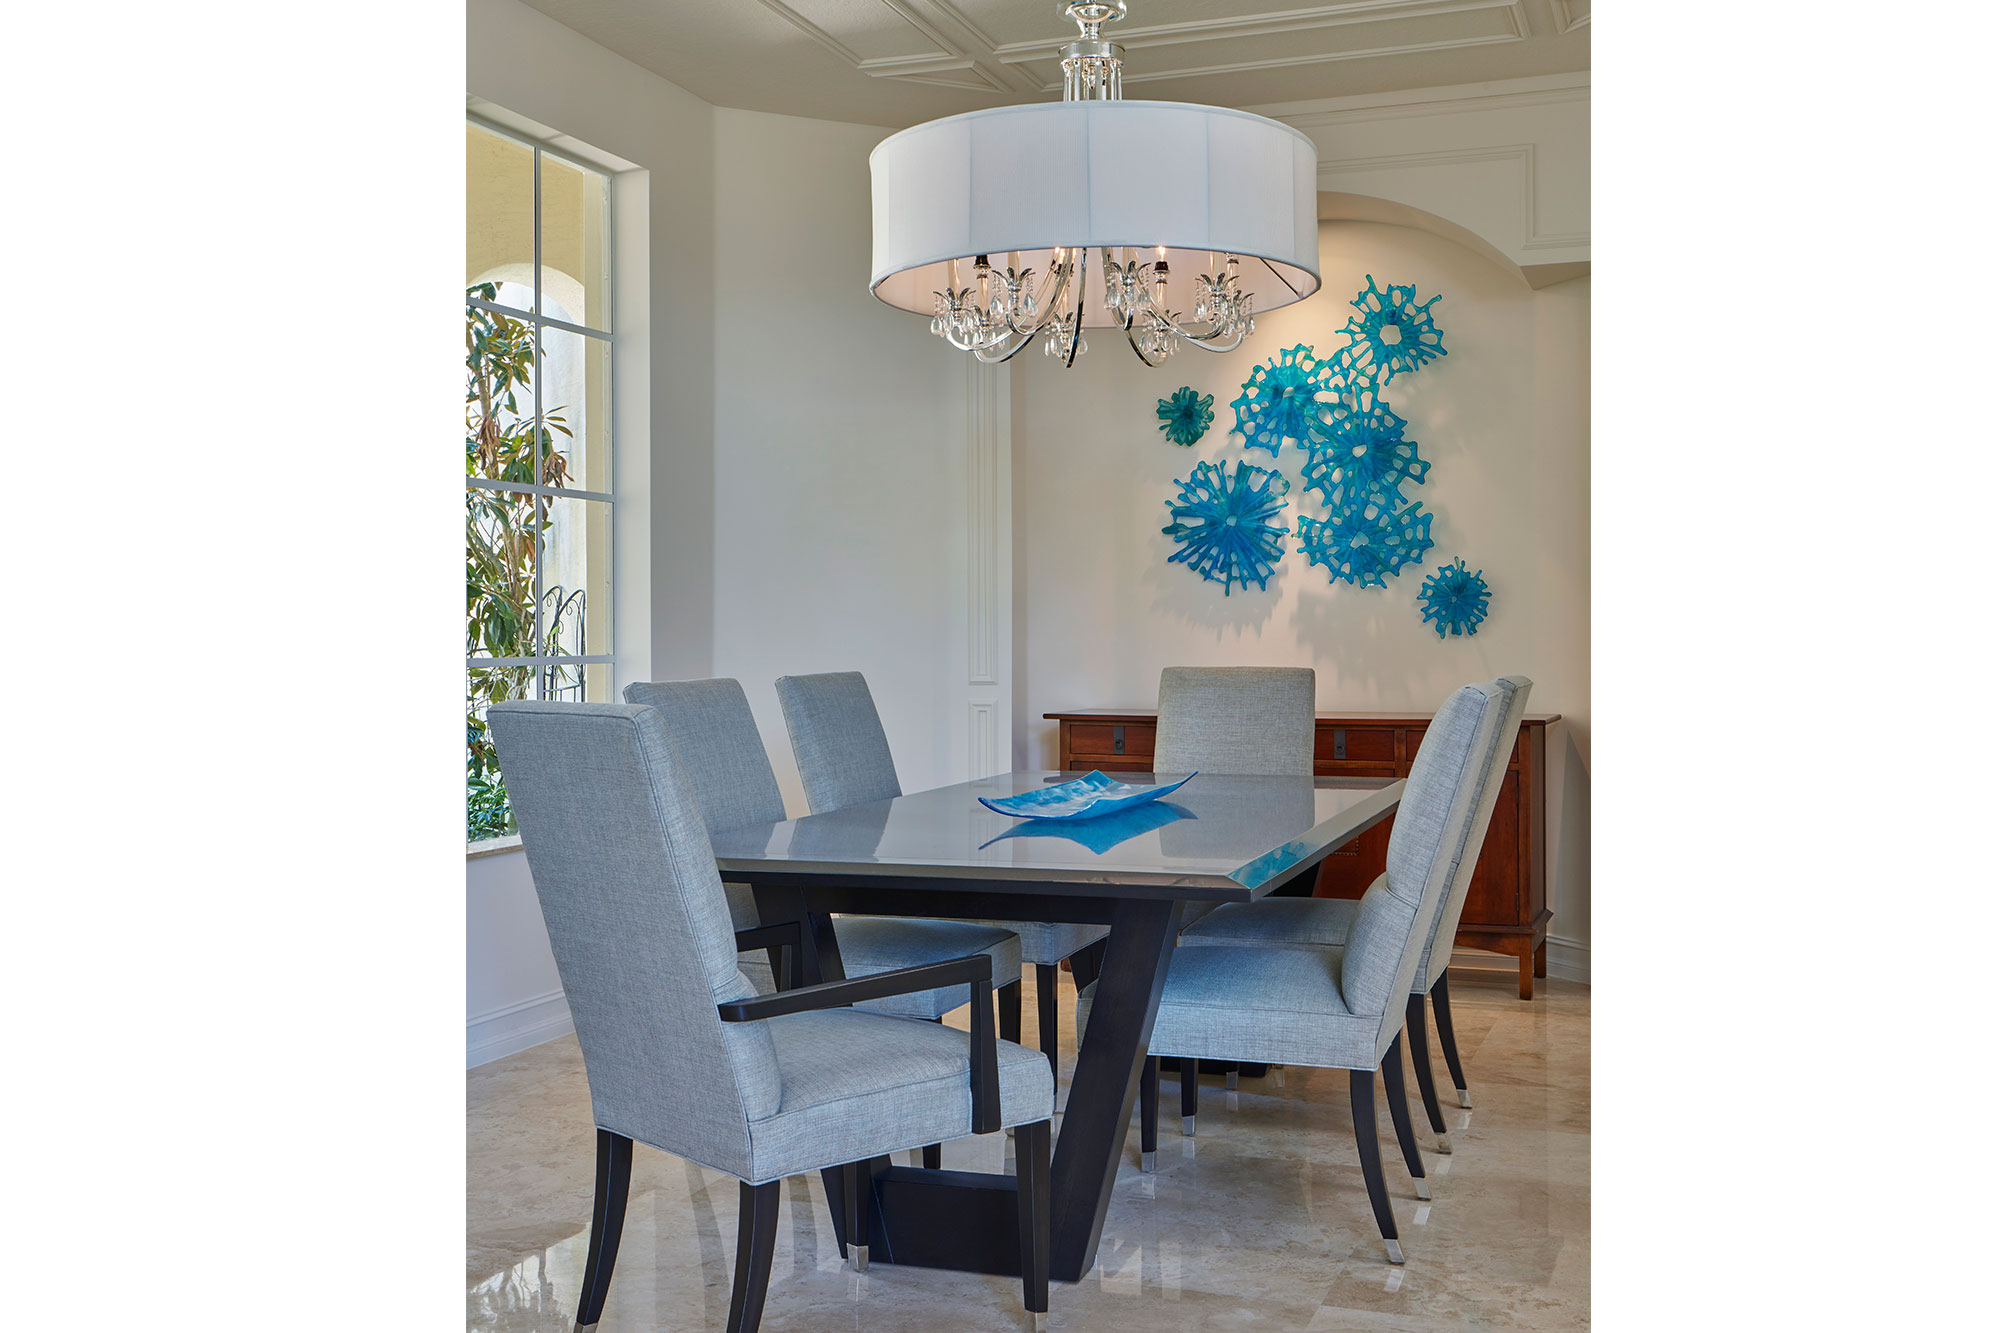 Palm Beach Gardens Interior Design